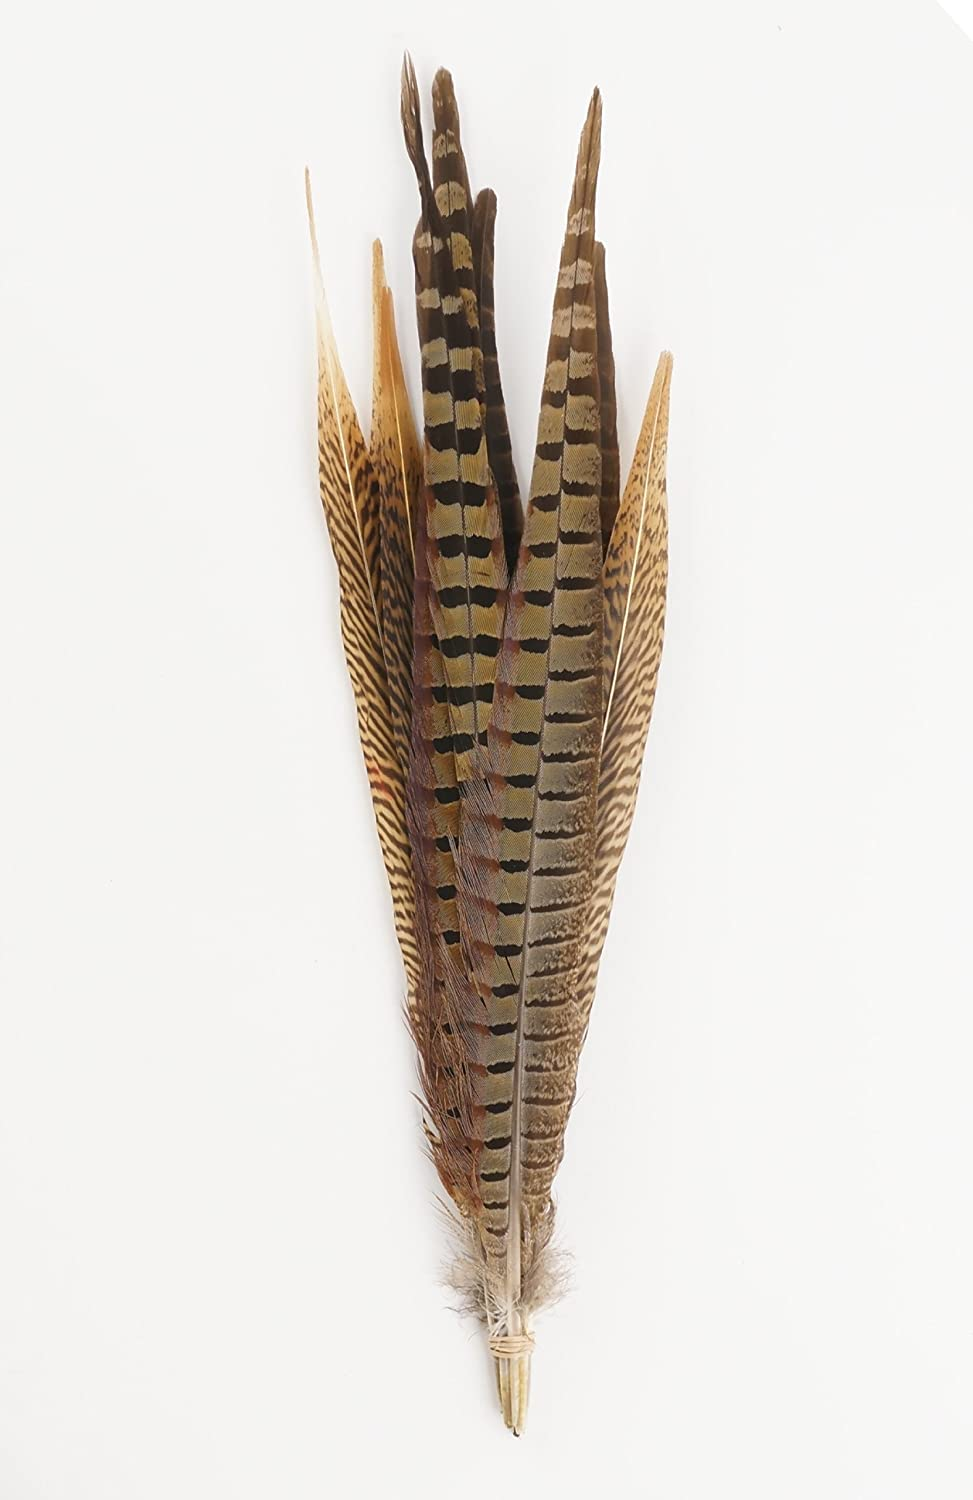 How to clean pheasant feathers - Amazon Com Zucker Feather Products Assorted Natural Pheasant Tails Feathers 14 To18 Inch Home Kitchen